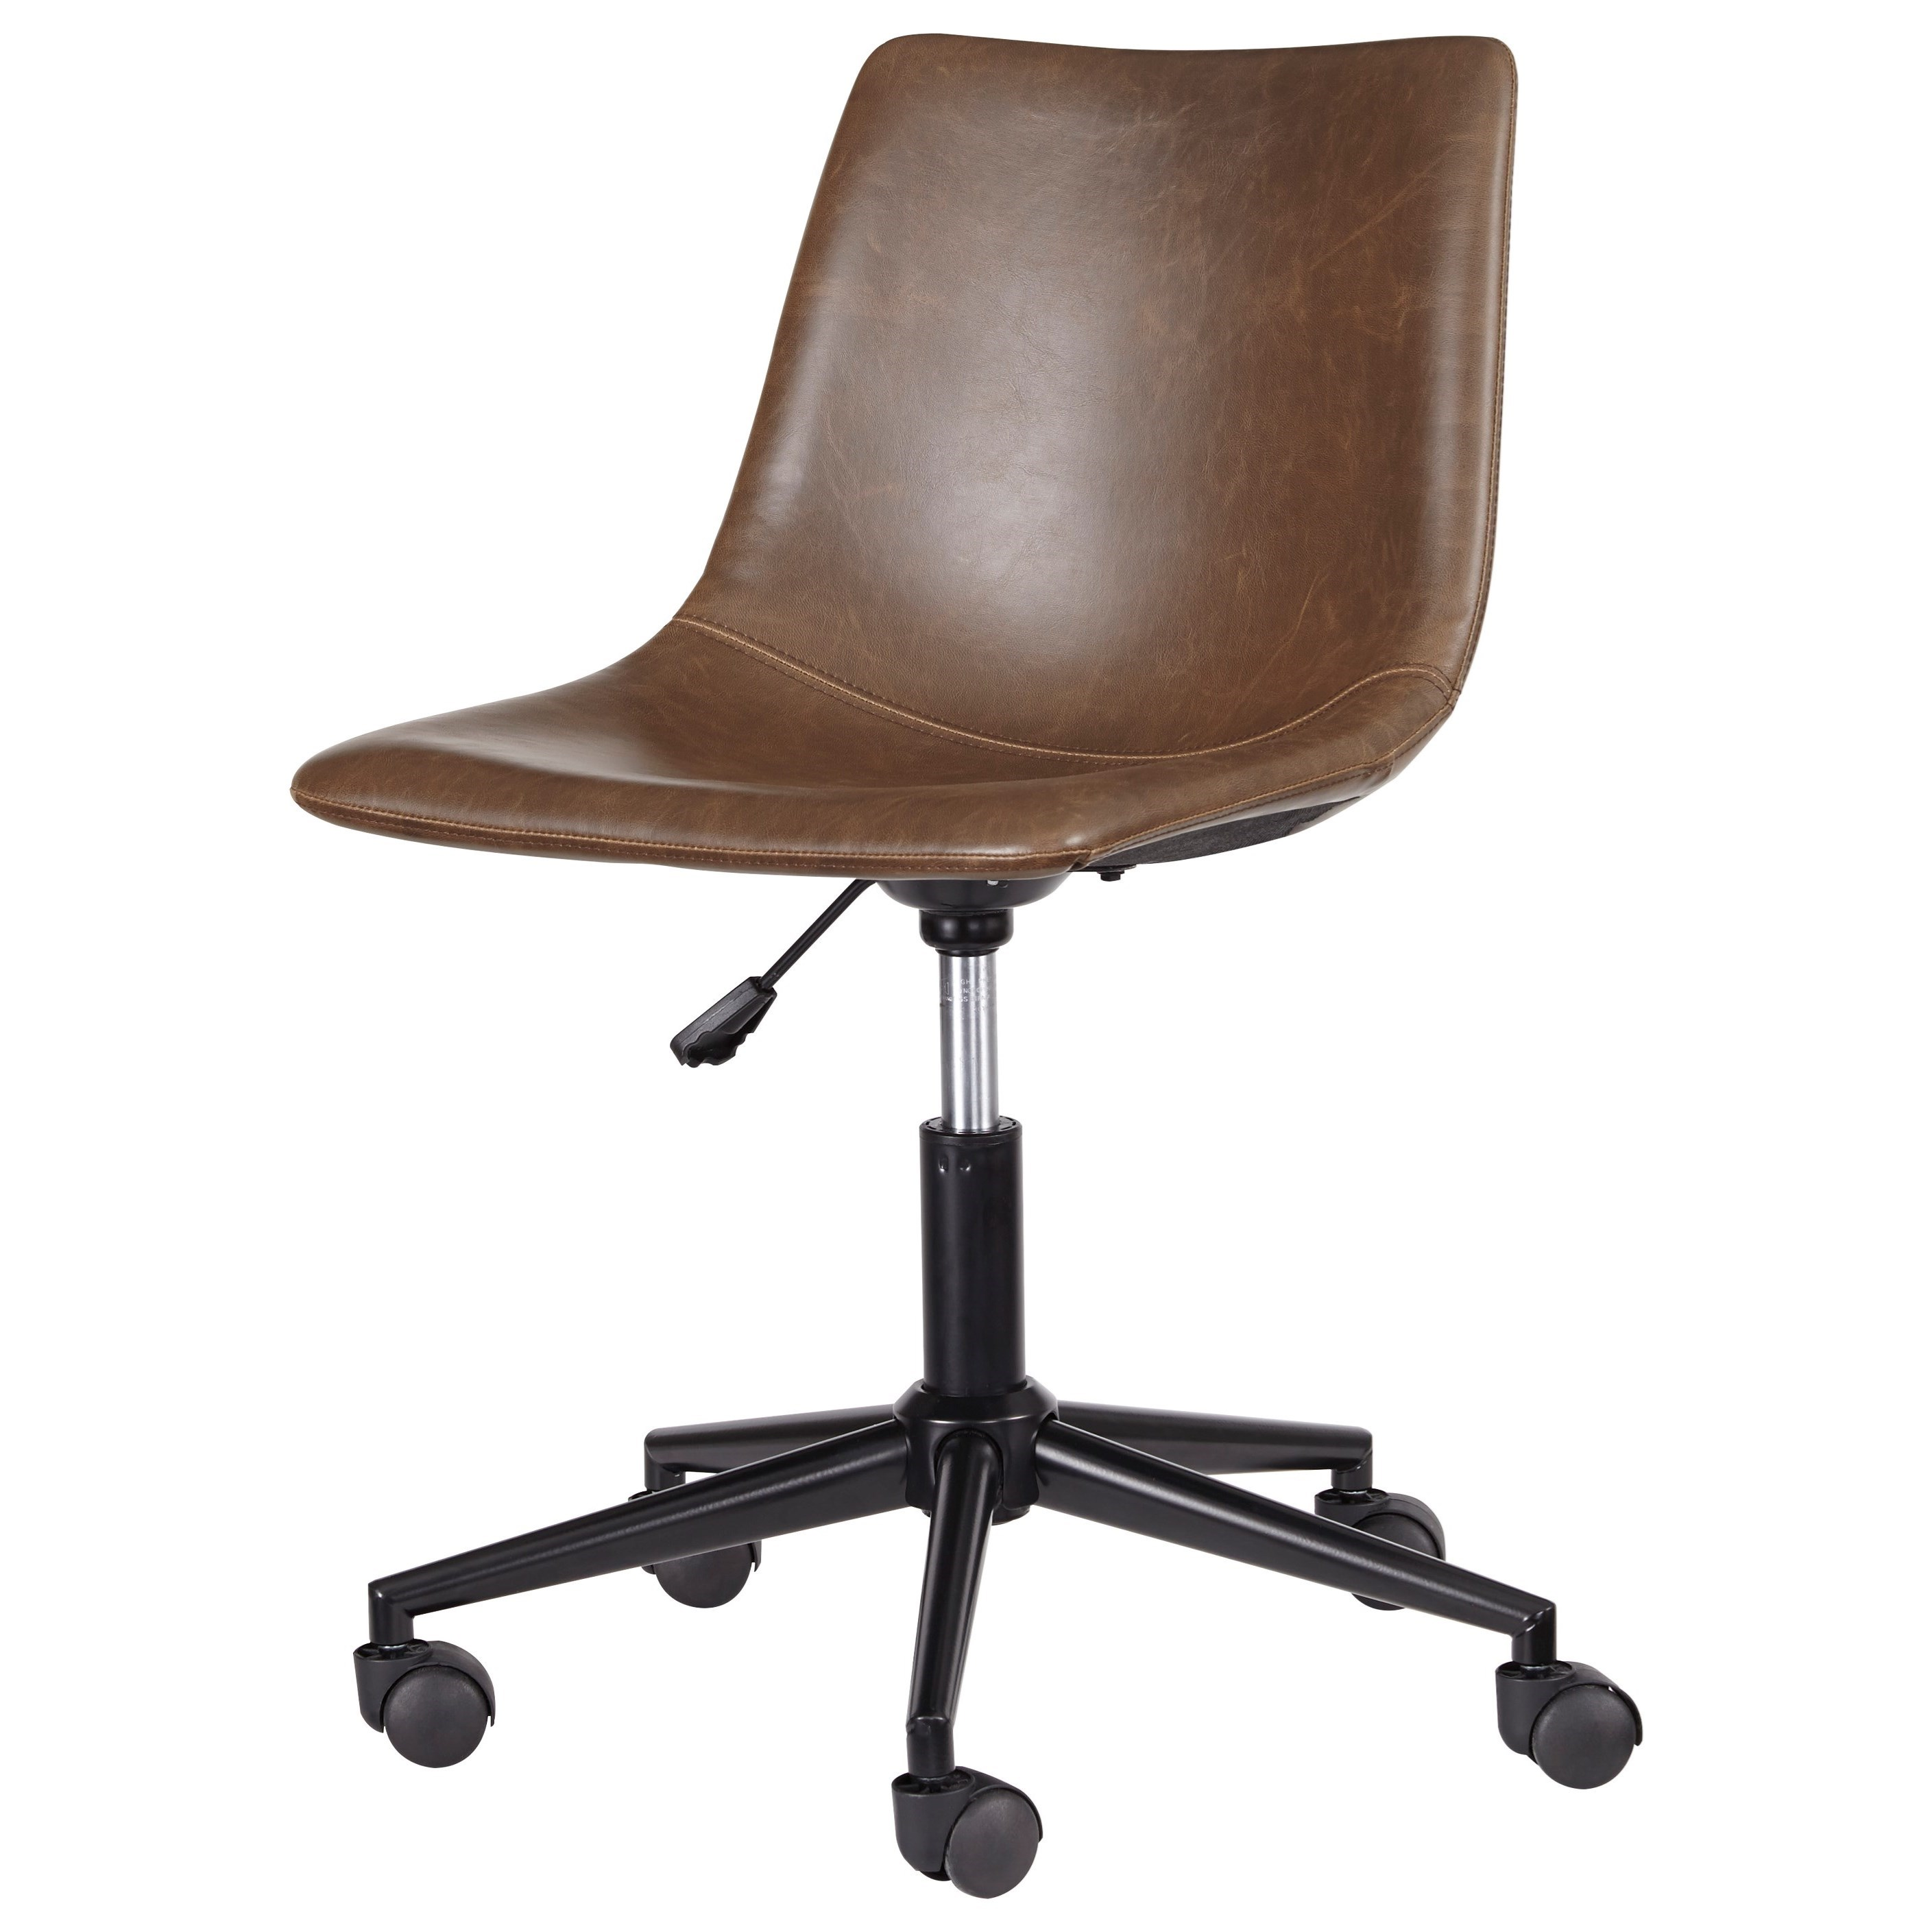 Office Chair Program Home Office Swivel Desk Chair by Signature Design by Ashley at Northeast Factory Direct